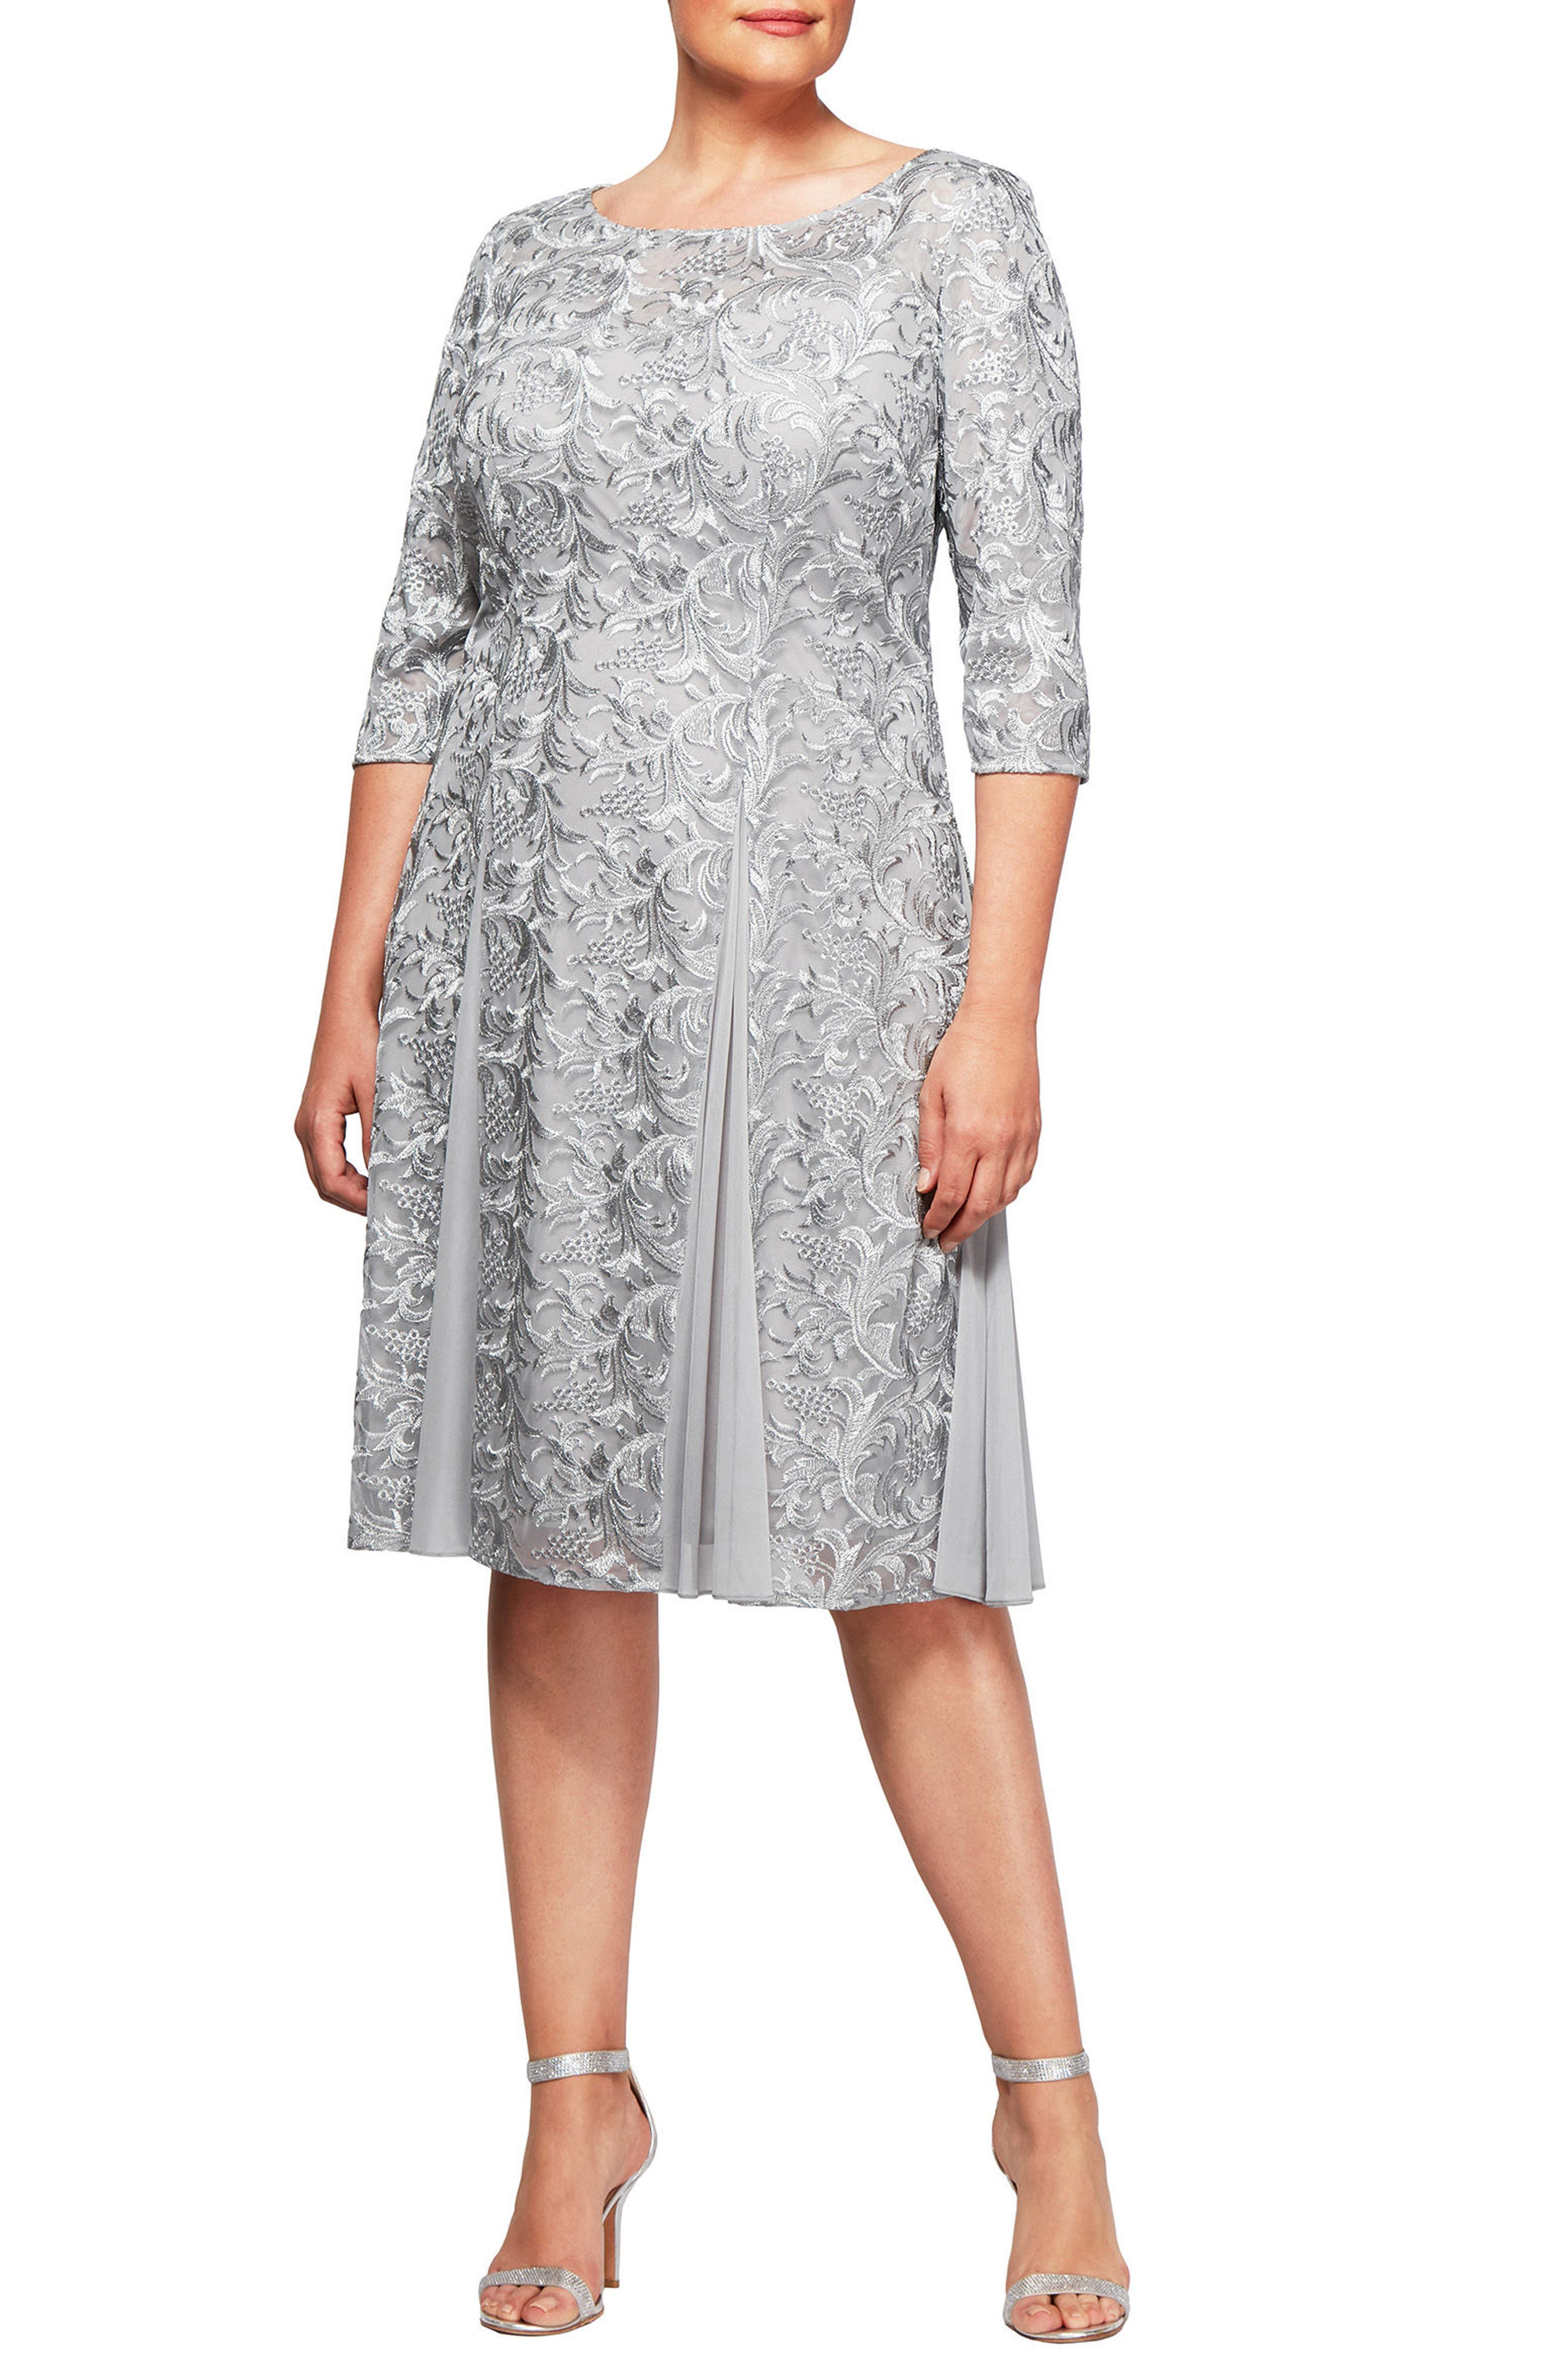 Alternate Image 1 Selected - Alex Evenings Embroidered A-Line Midi Dress (Plus Size)